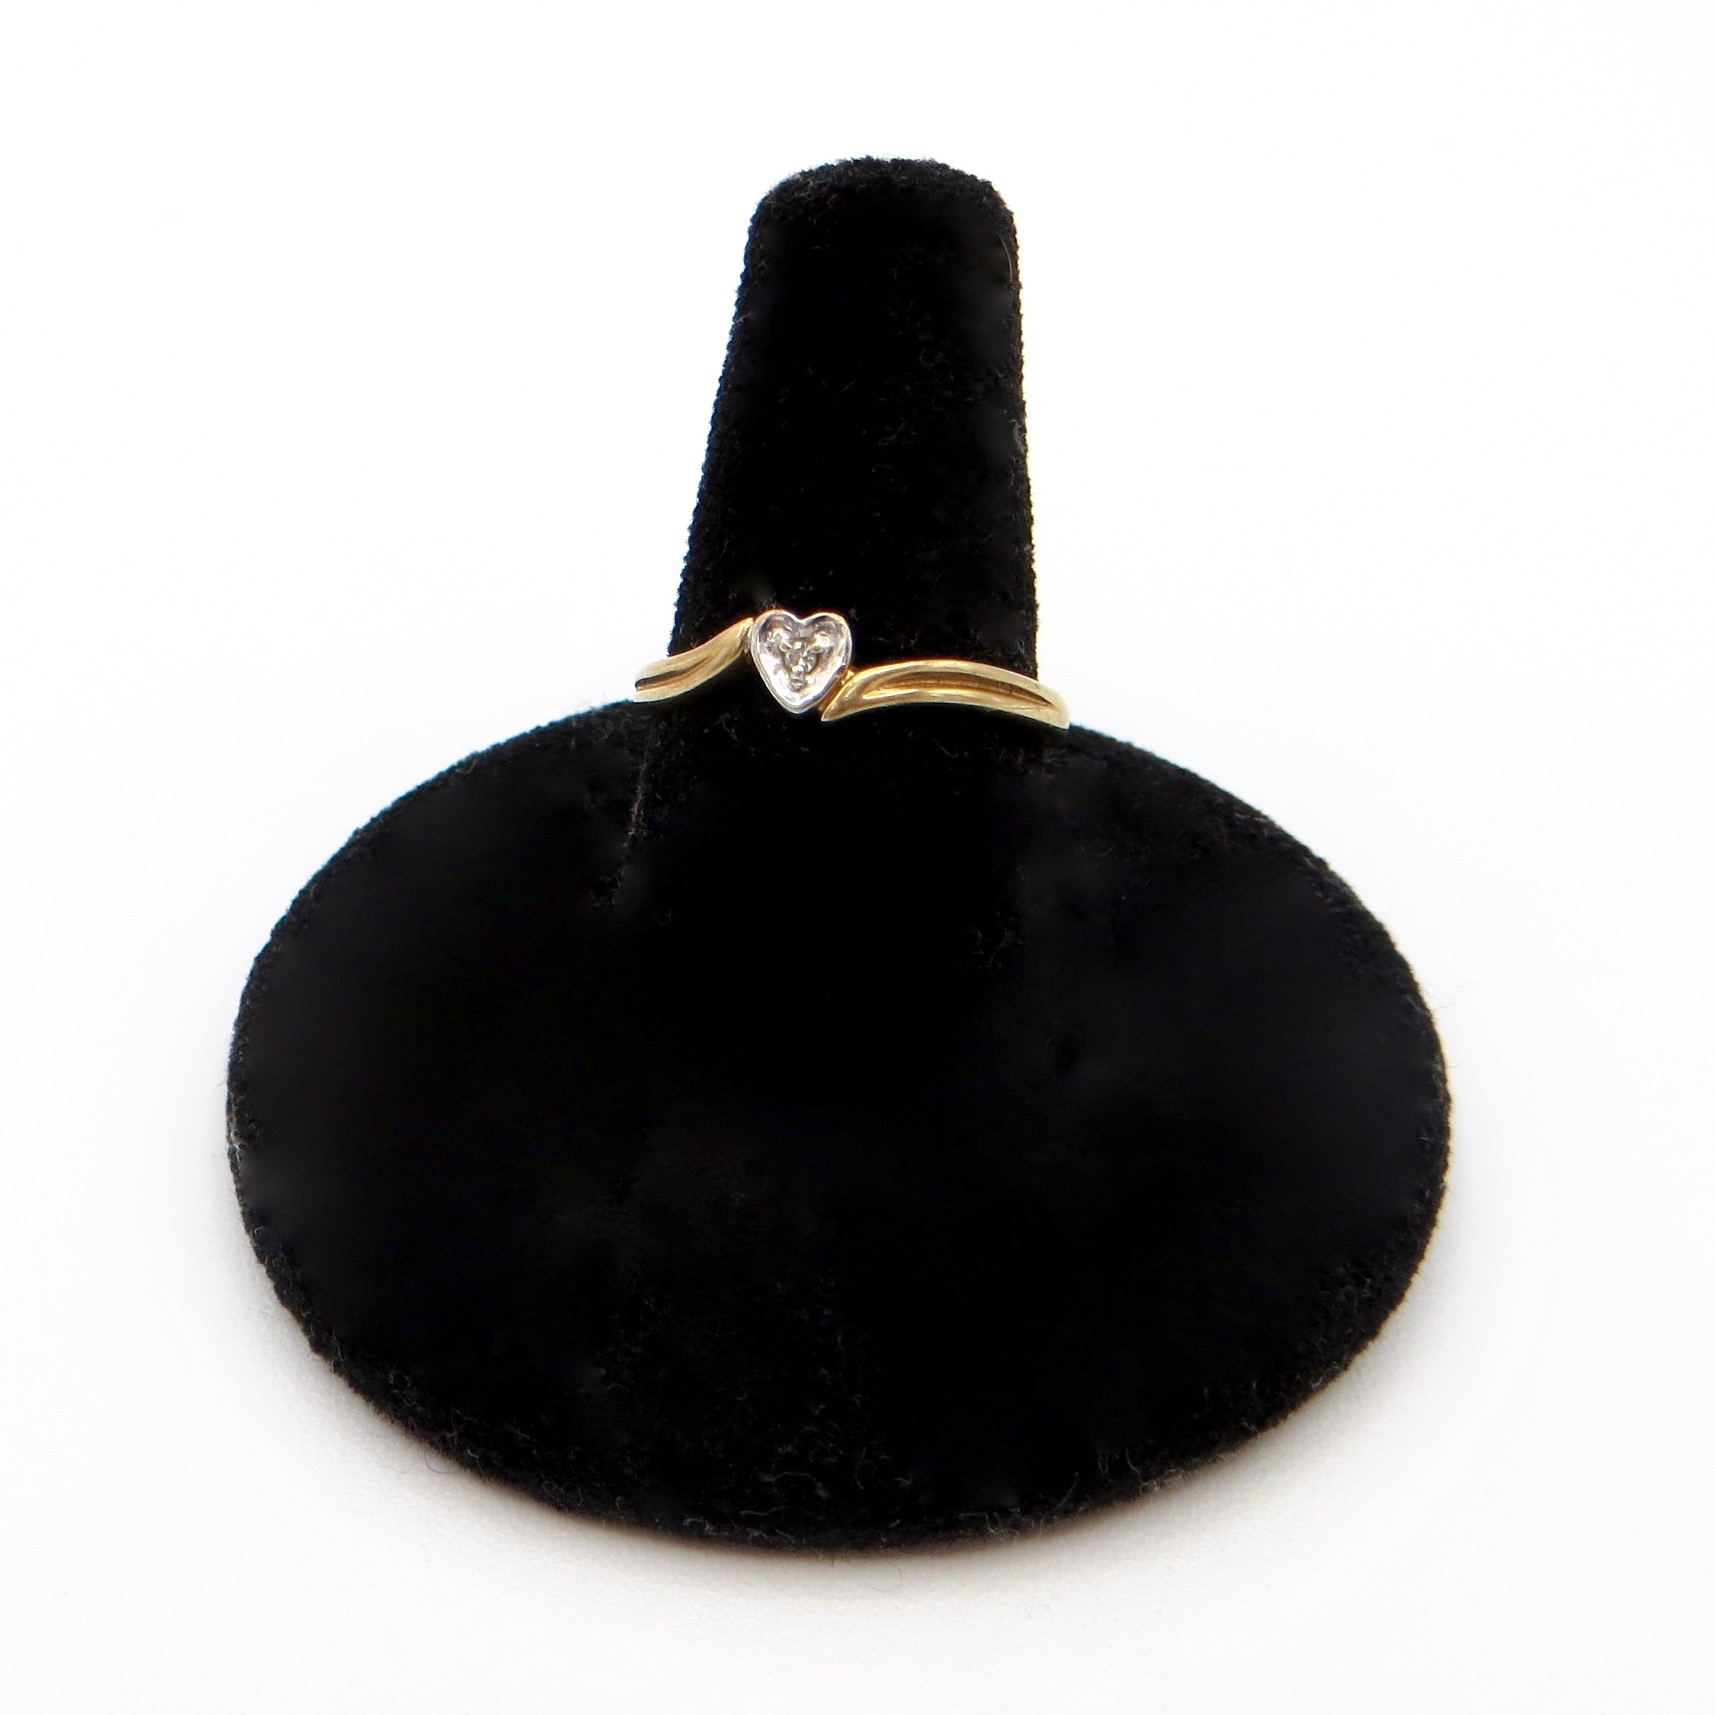 Dainty Gold Heart Ring